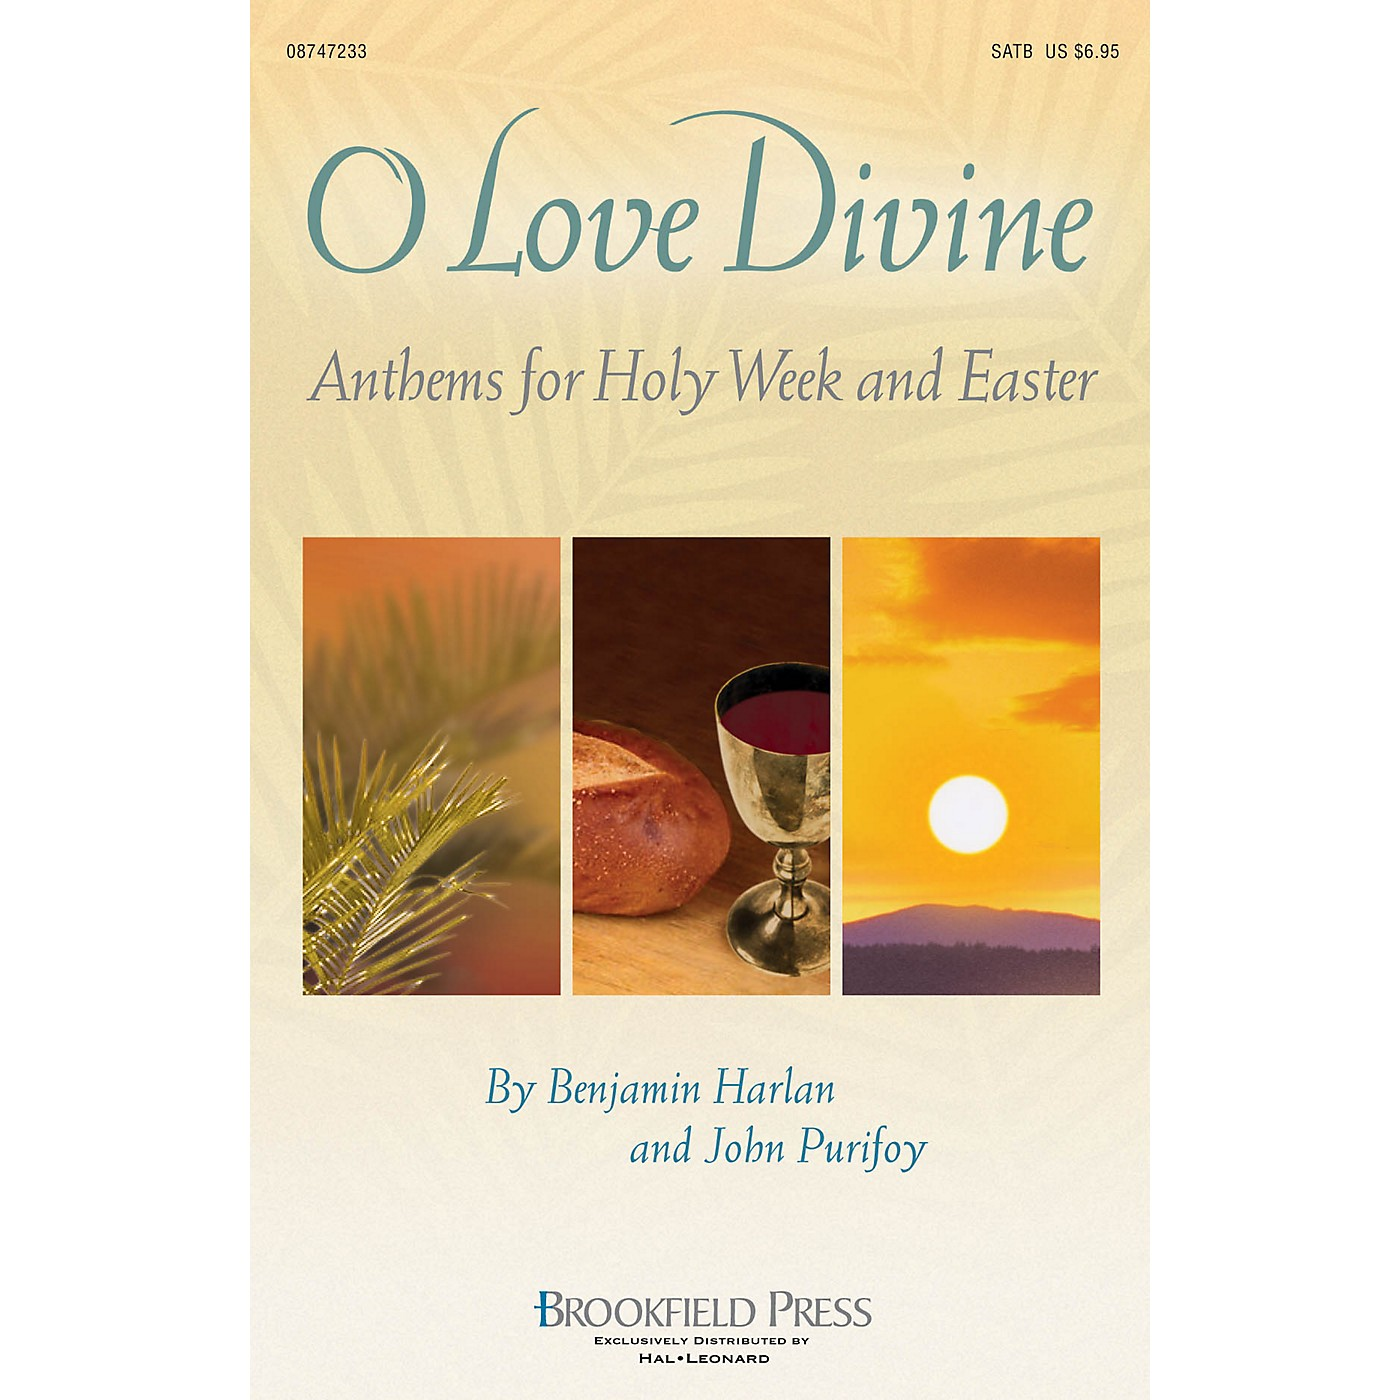 Brookfield O Love Divine (Anthems for Holy Week and Easter) CD 10-PAK Arranged by Benjamin Harlan thumbnail